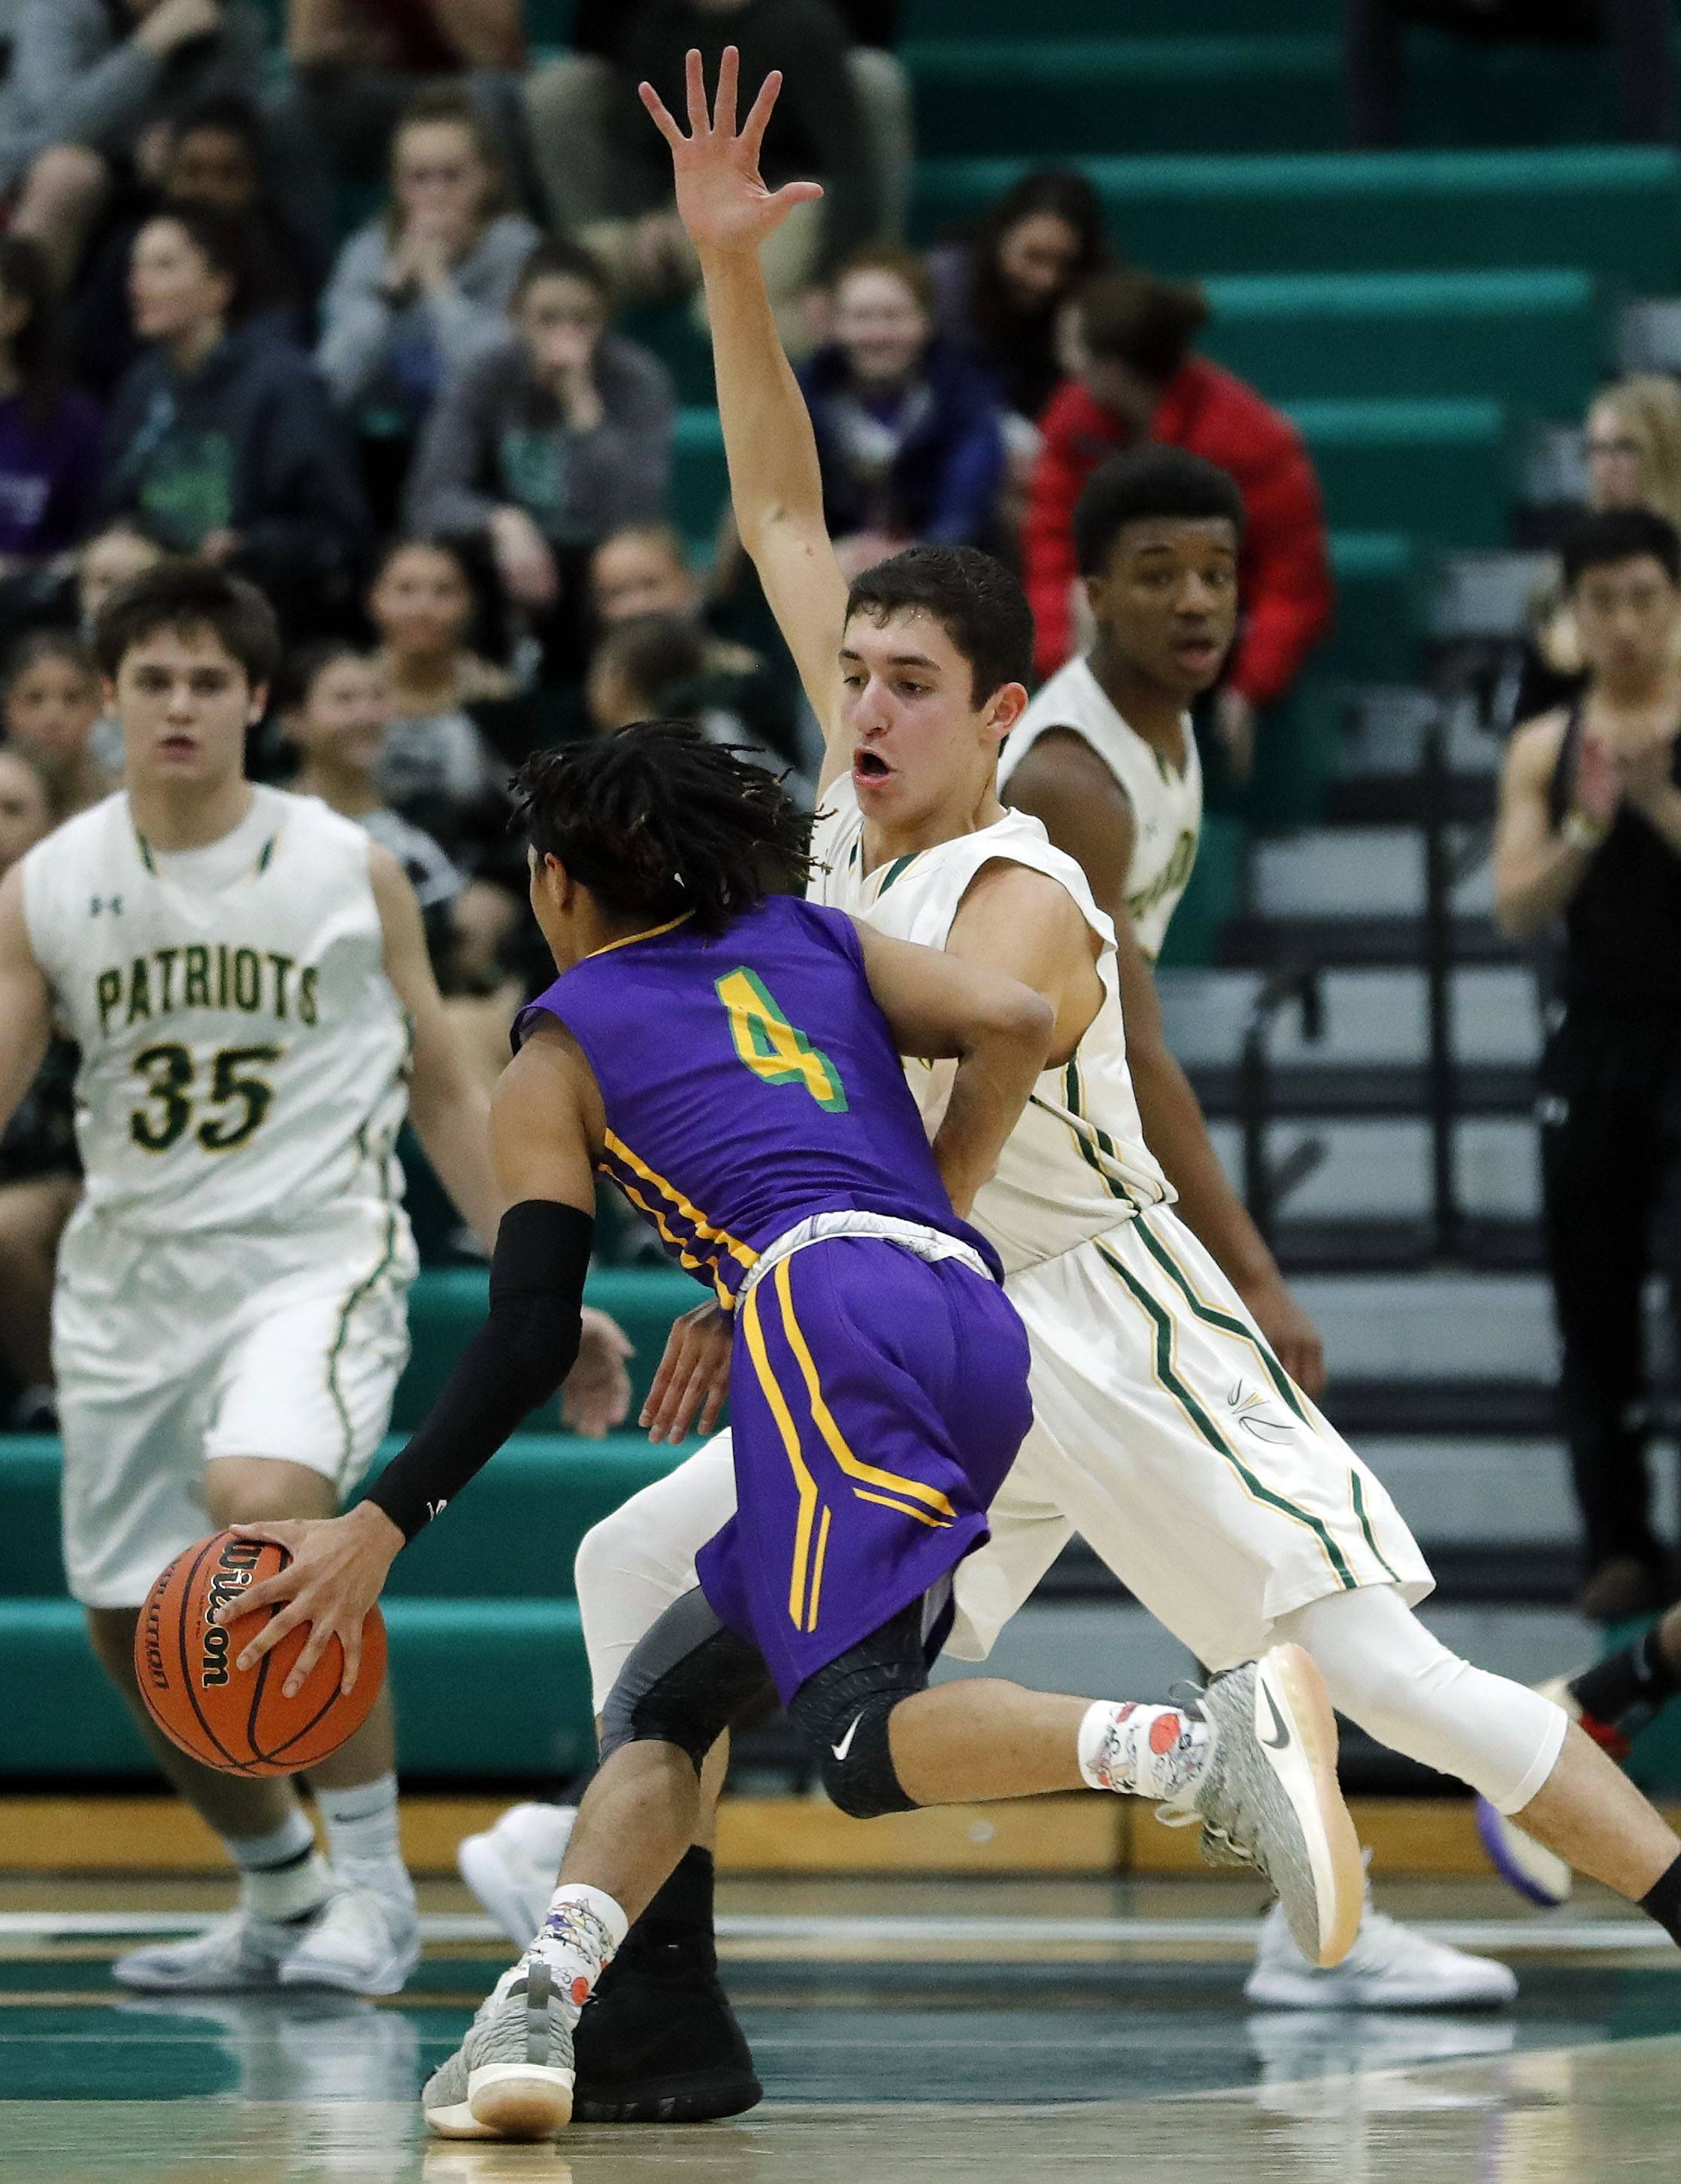 Stevenson's John Ittounas, right, defends against Waukegan's Andre White during their game Friday night in Lincolnshire.